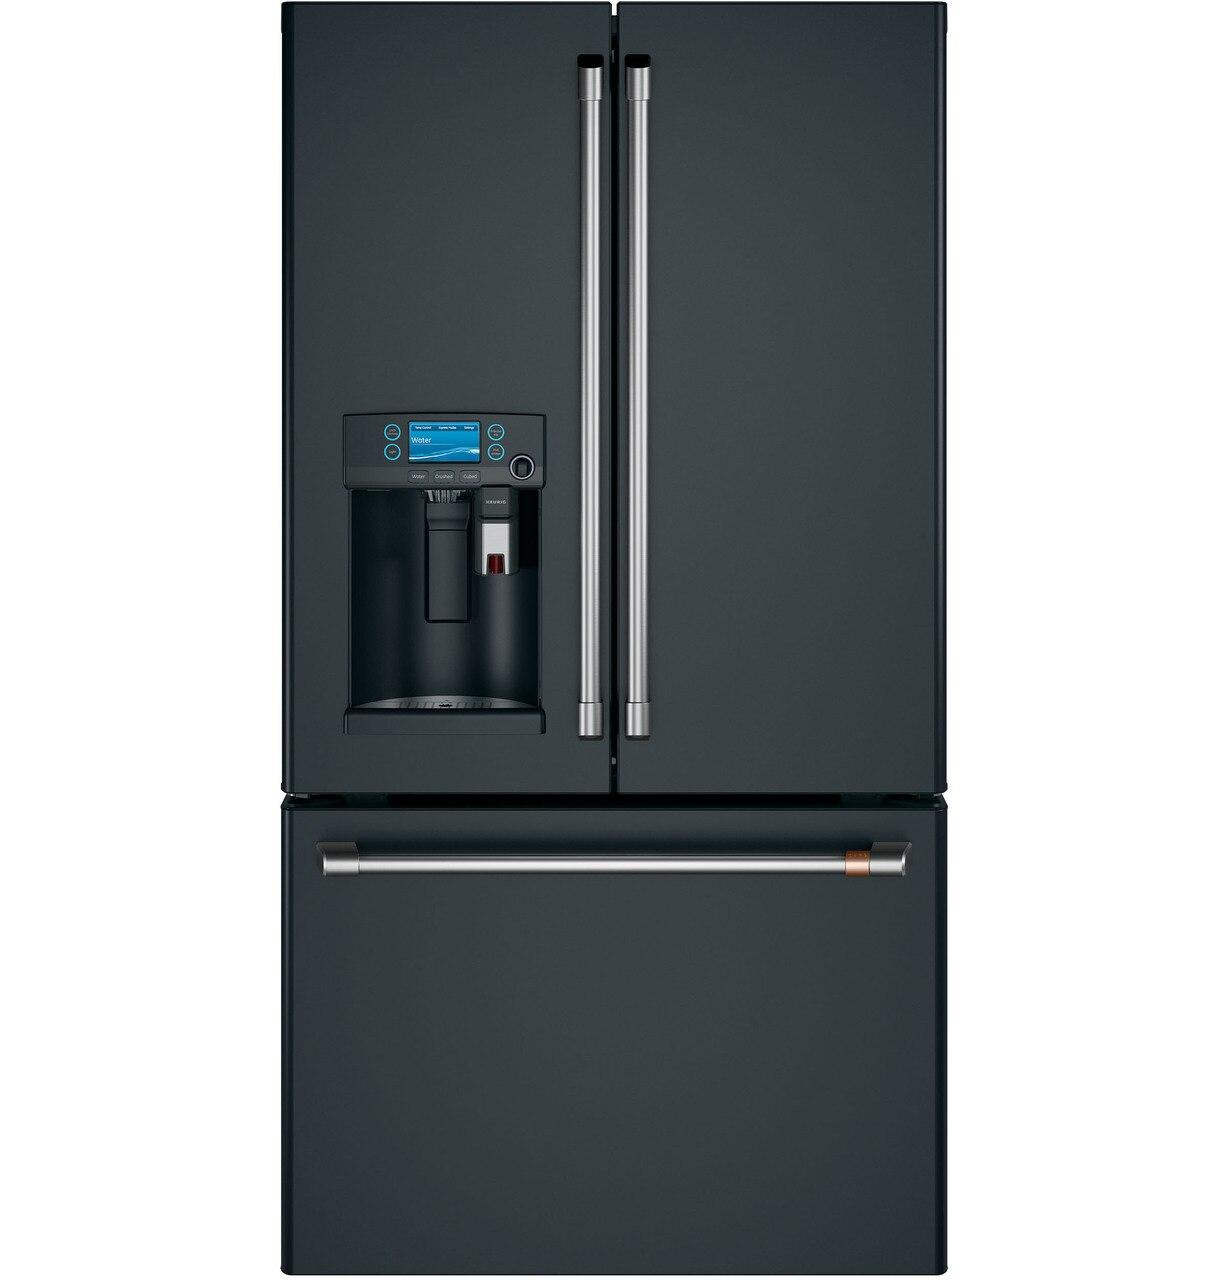 CafeCafé™ Energy Star® 27.7 Cu. Ft. French-Door Refrigerator With Keurig® K-Cup® Brewing System